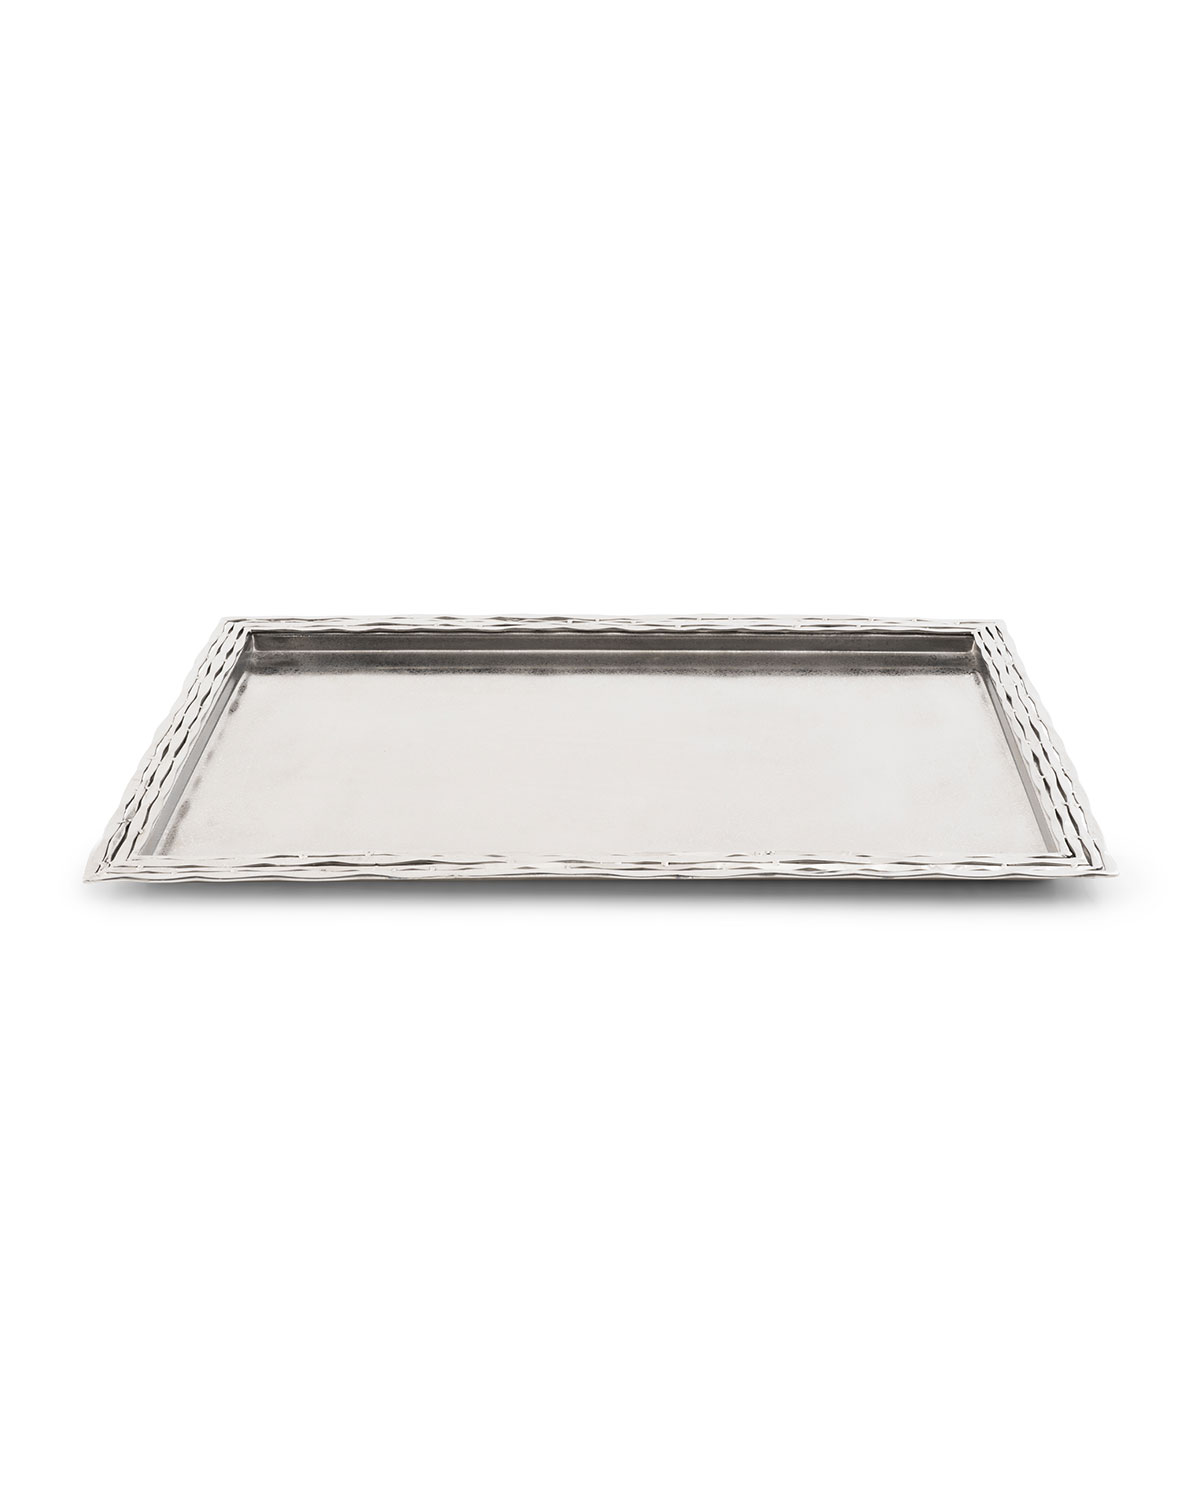 Michael Aram Mirage Large Tray